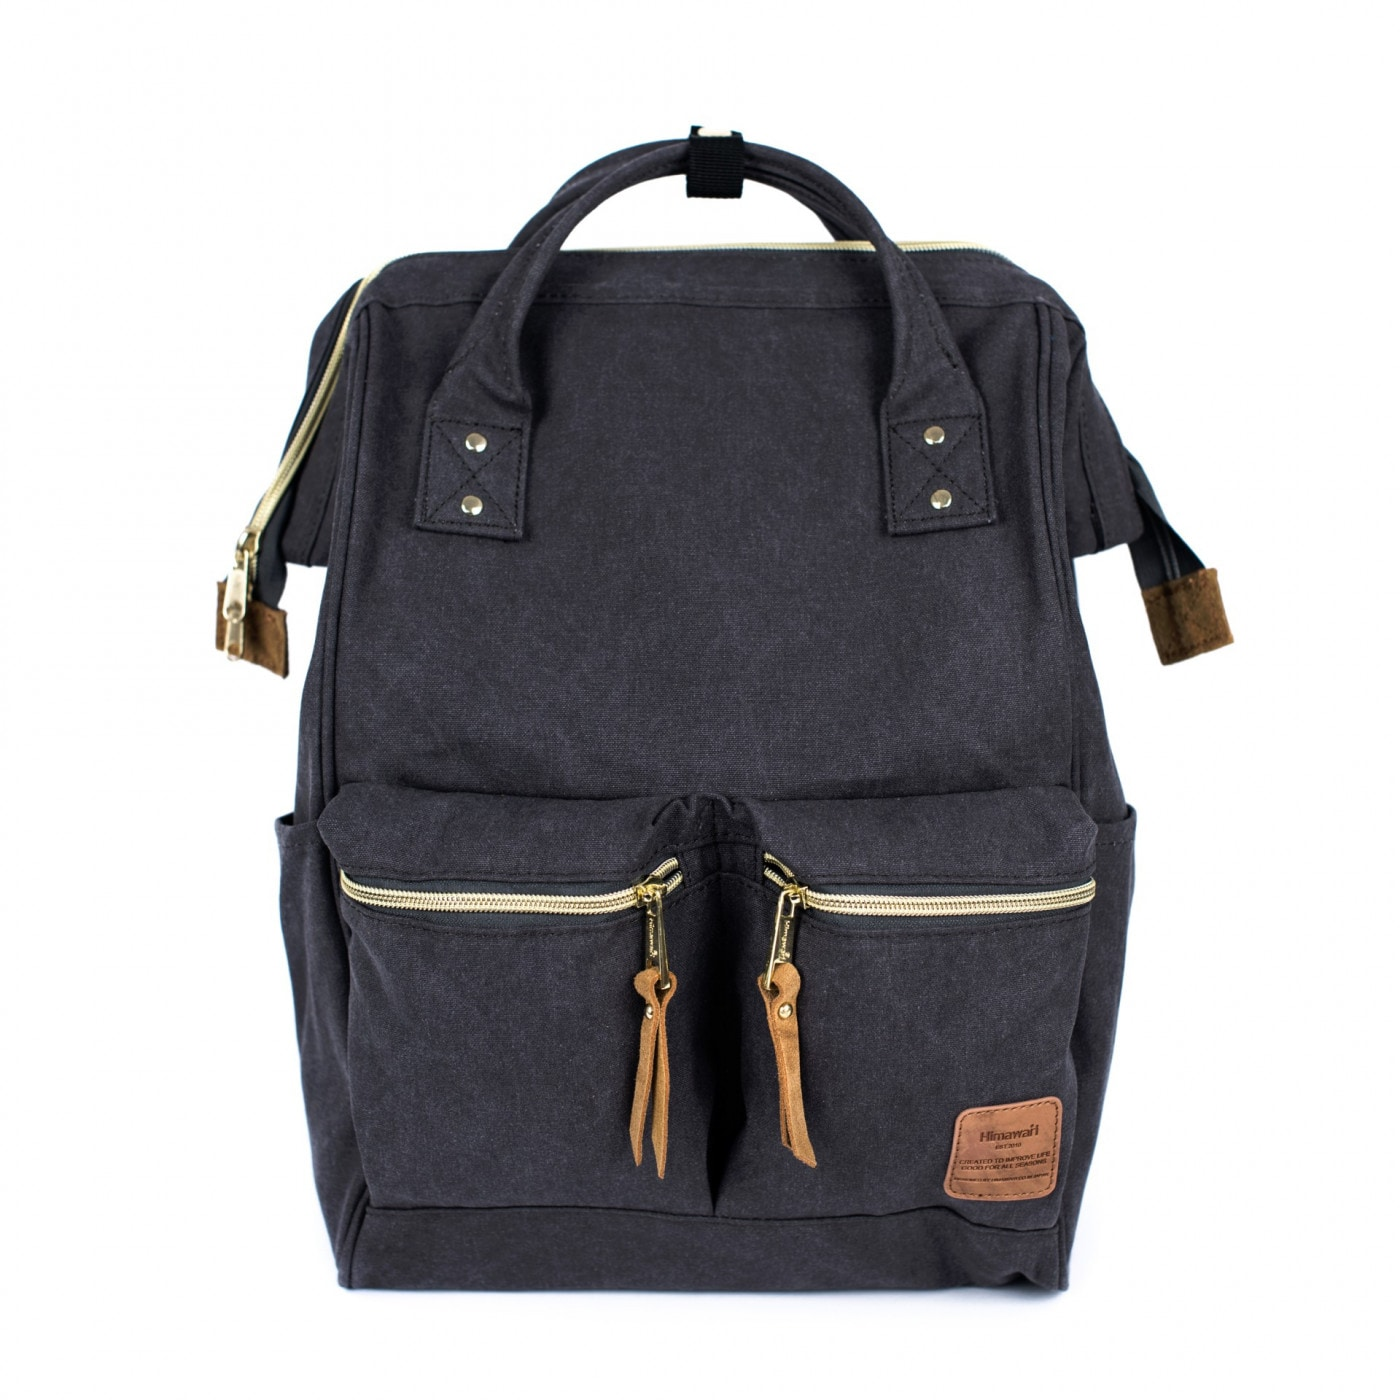 Art Of Polo Woman's Backpack tr20232